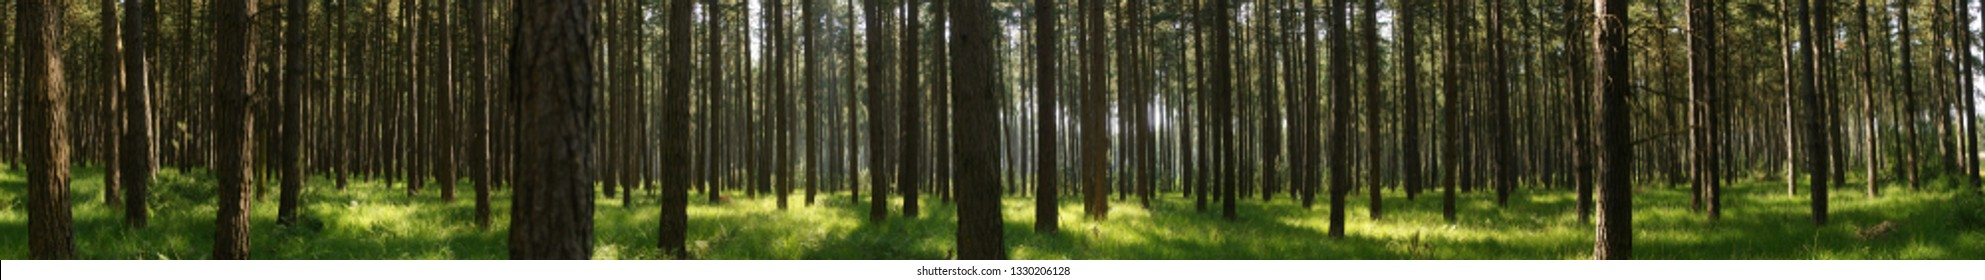 panoramical image of a pine forest in the natural reserve 'de Zoom - Kalmthoutse Heide' in the nord of Belgium on the frontier of the Netherlands